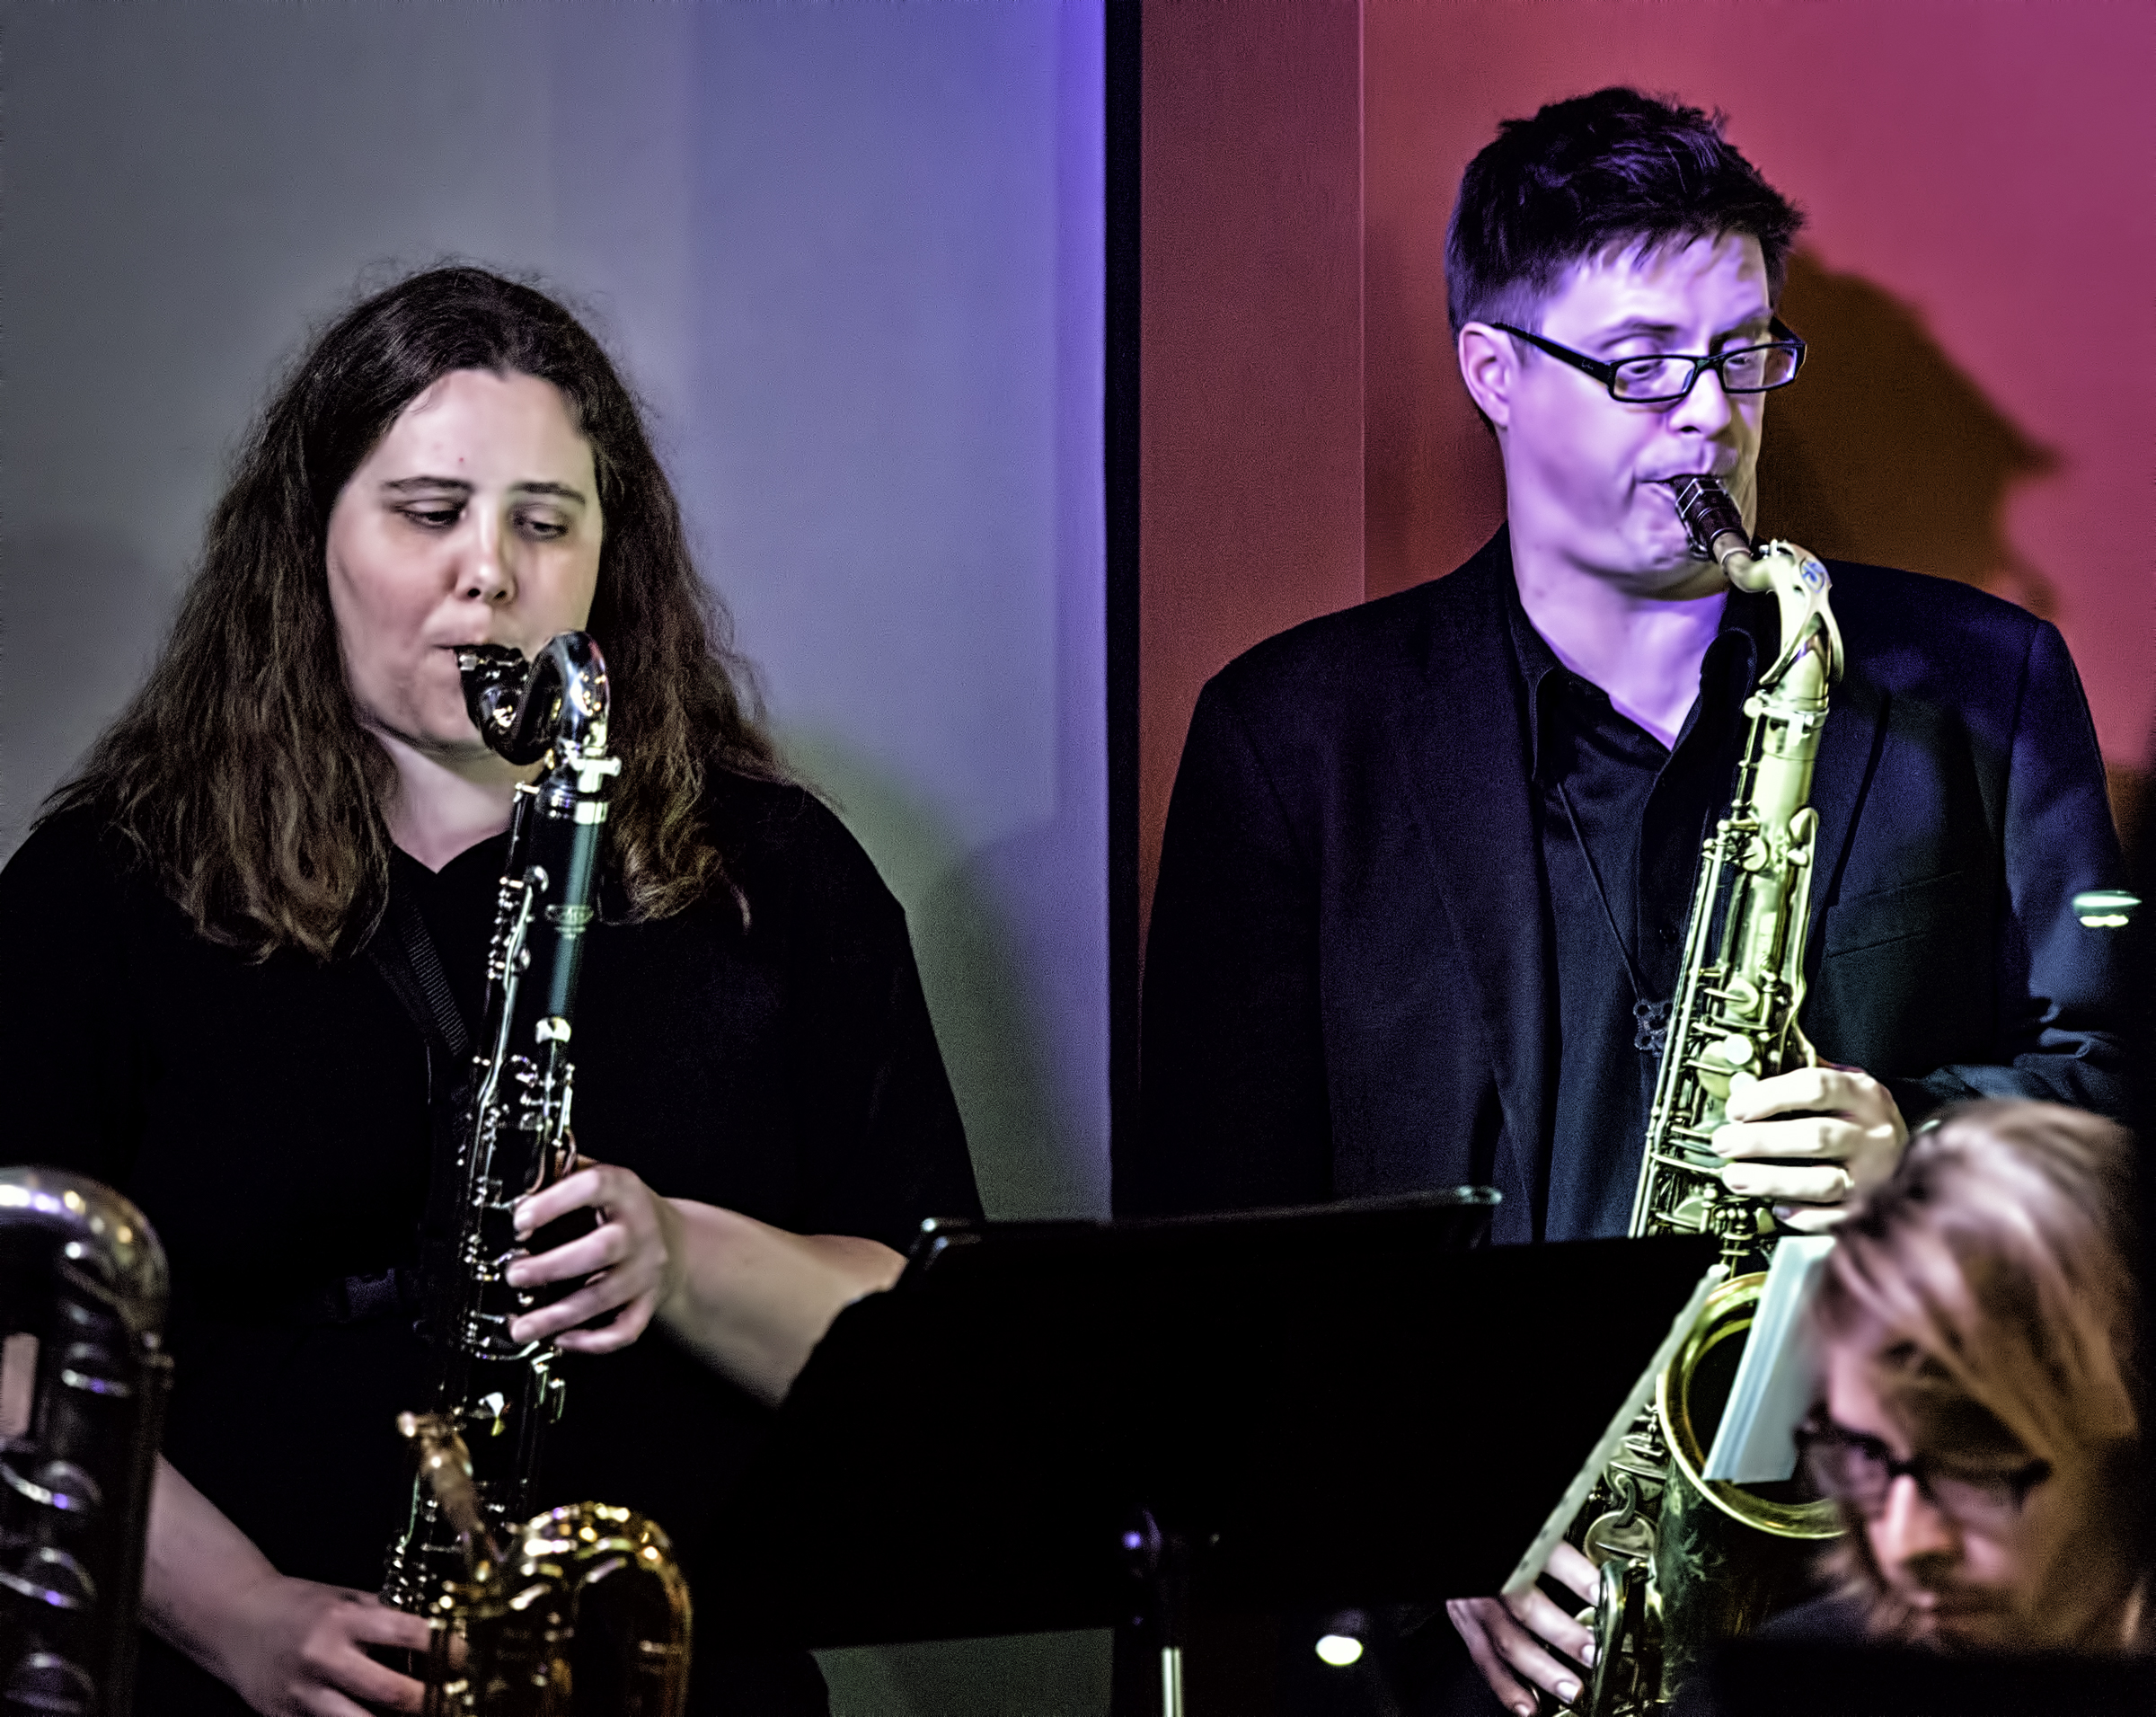 Monica Shriver And Adam Roberts With Eric Rasmussen And Scottsdale Community College Jazz Orchestra Featuring John Hollenbeck At The Nash In Phoenix